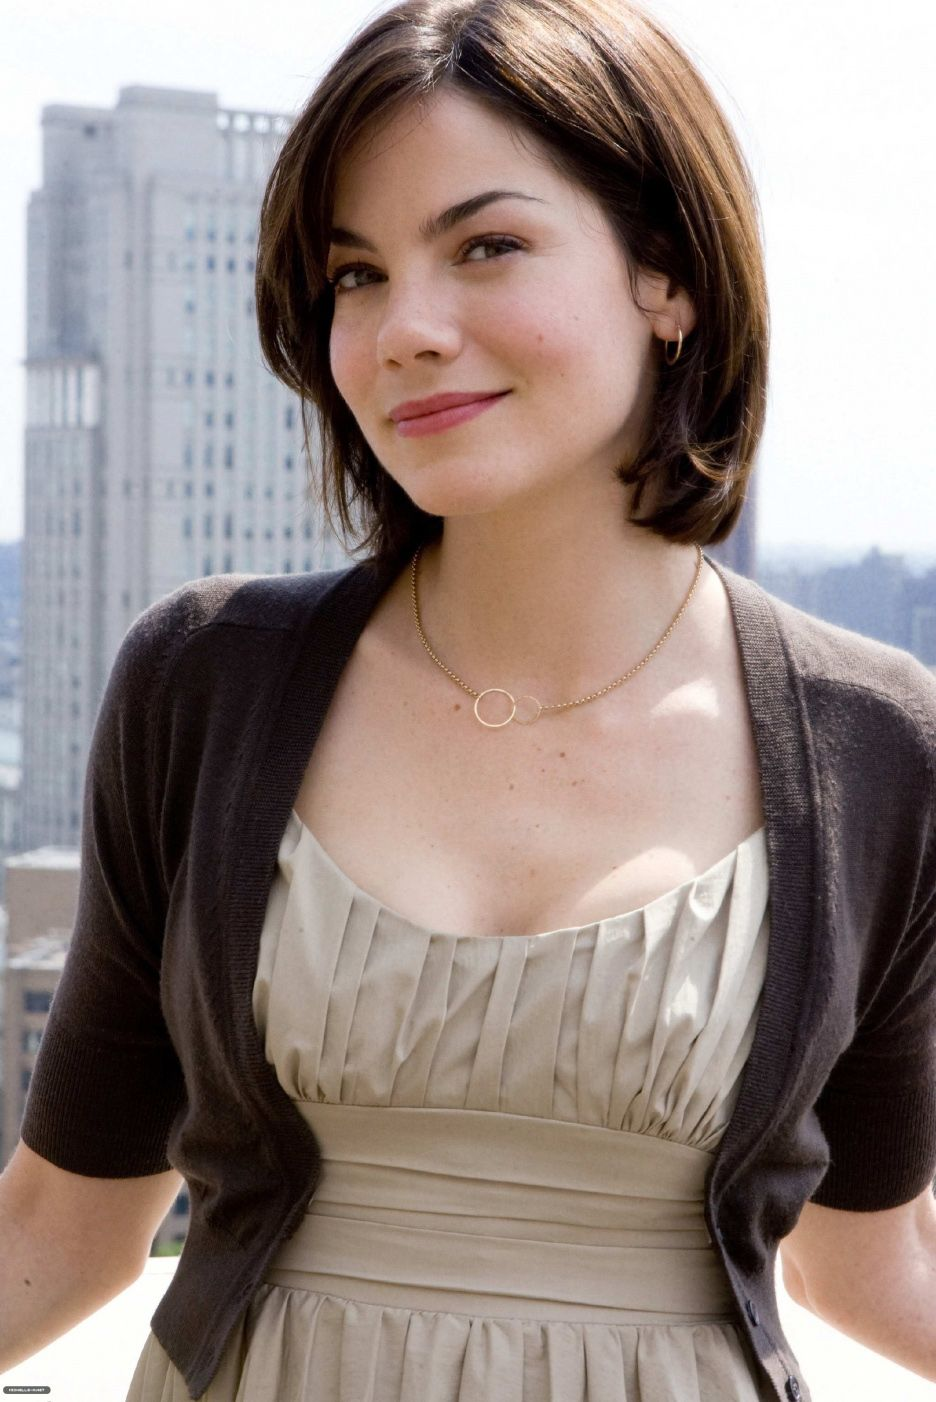 Michelle Monaghan Hair When The Back Grows Out And